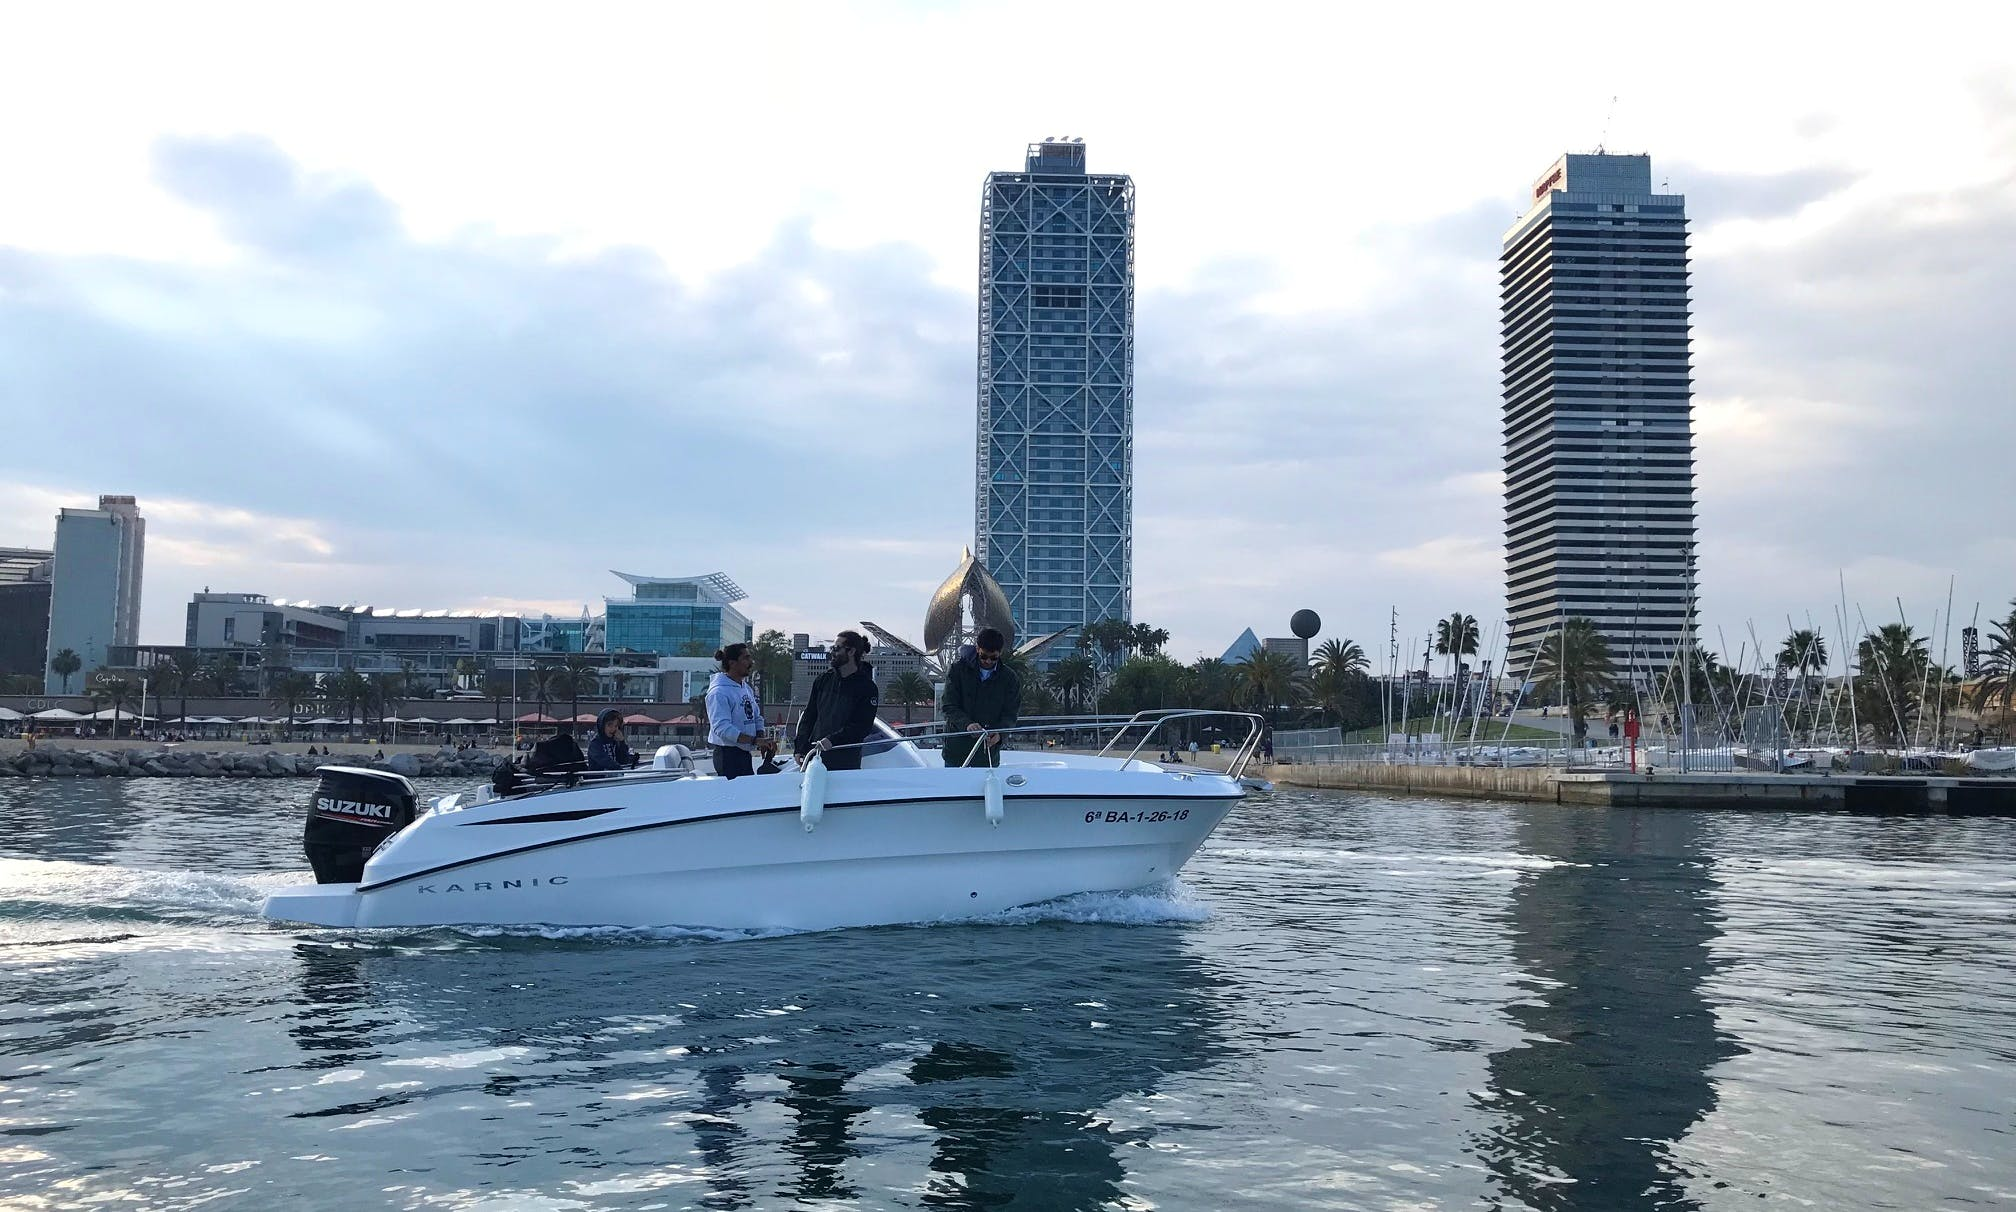 2018 Karnic 2251 mkII boat rental in Barcelona